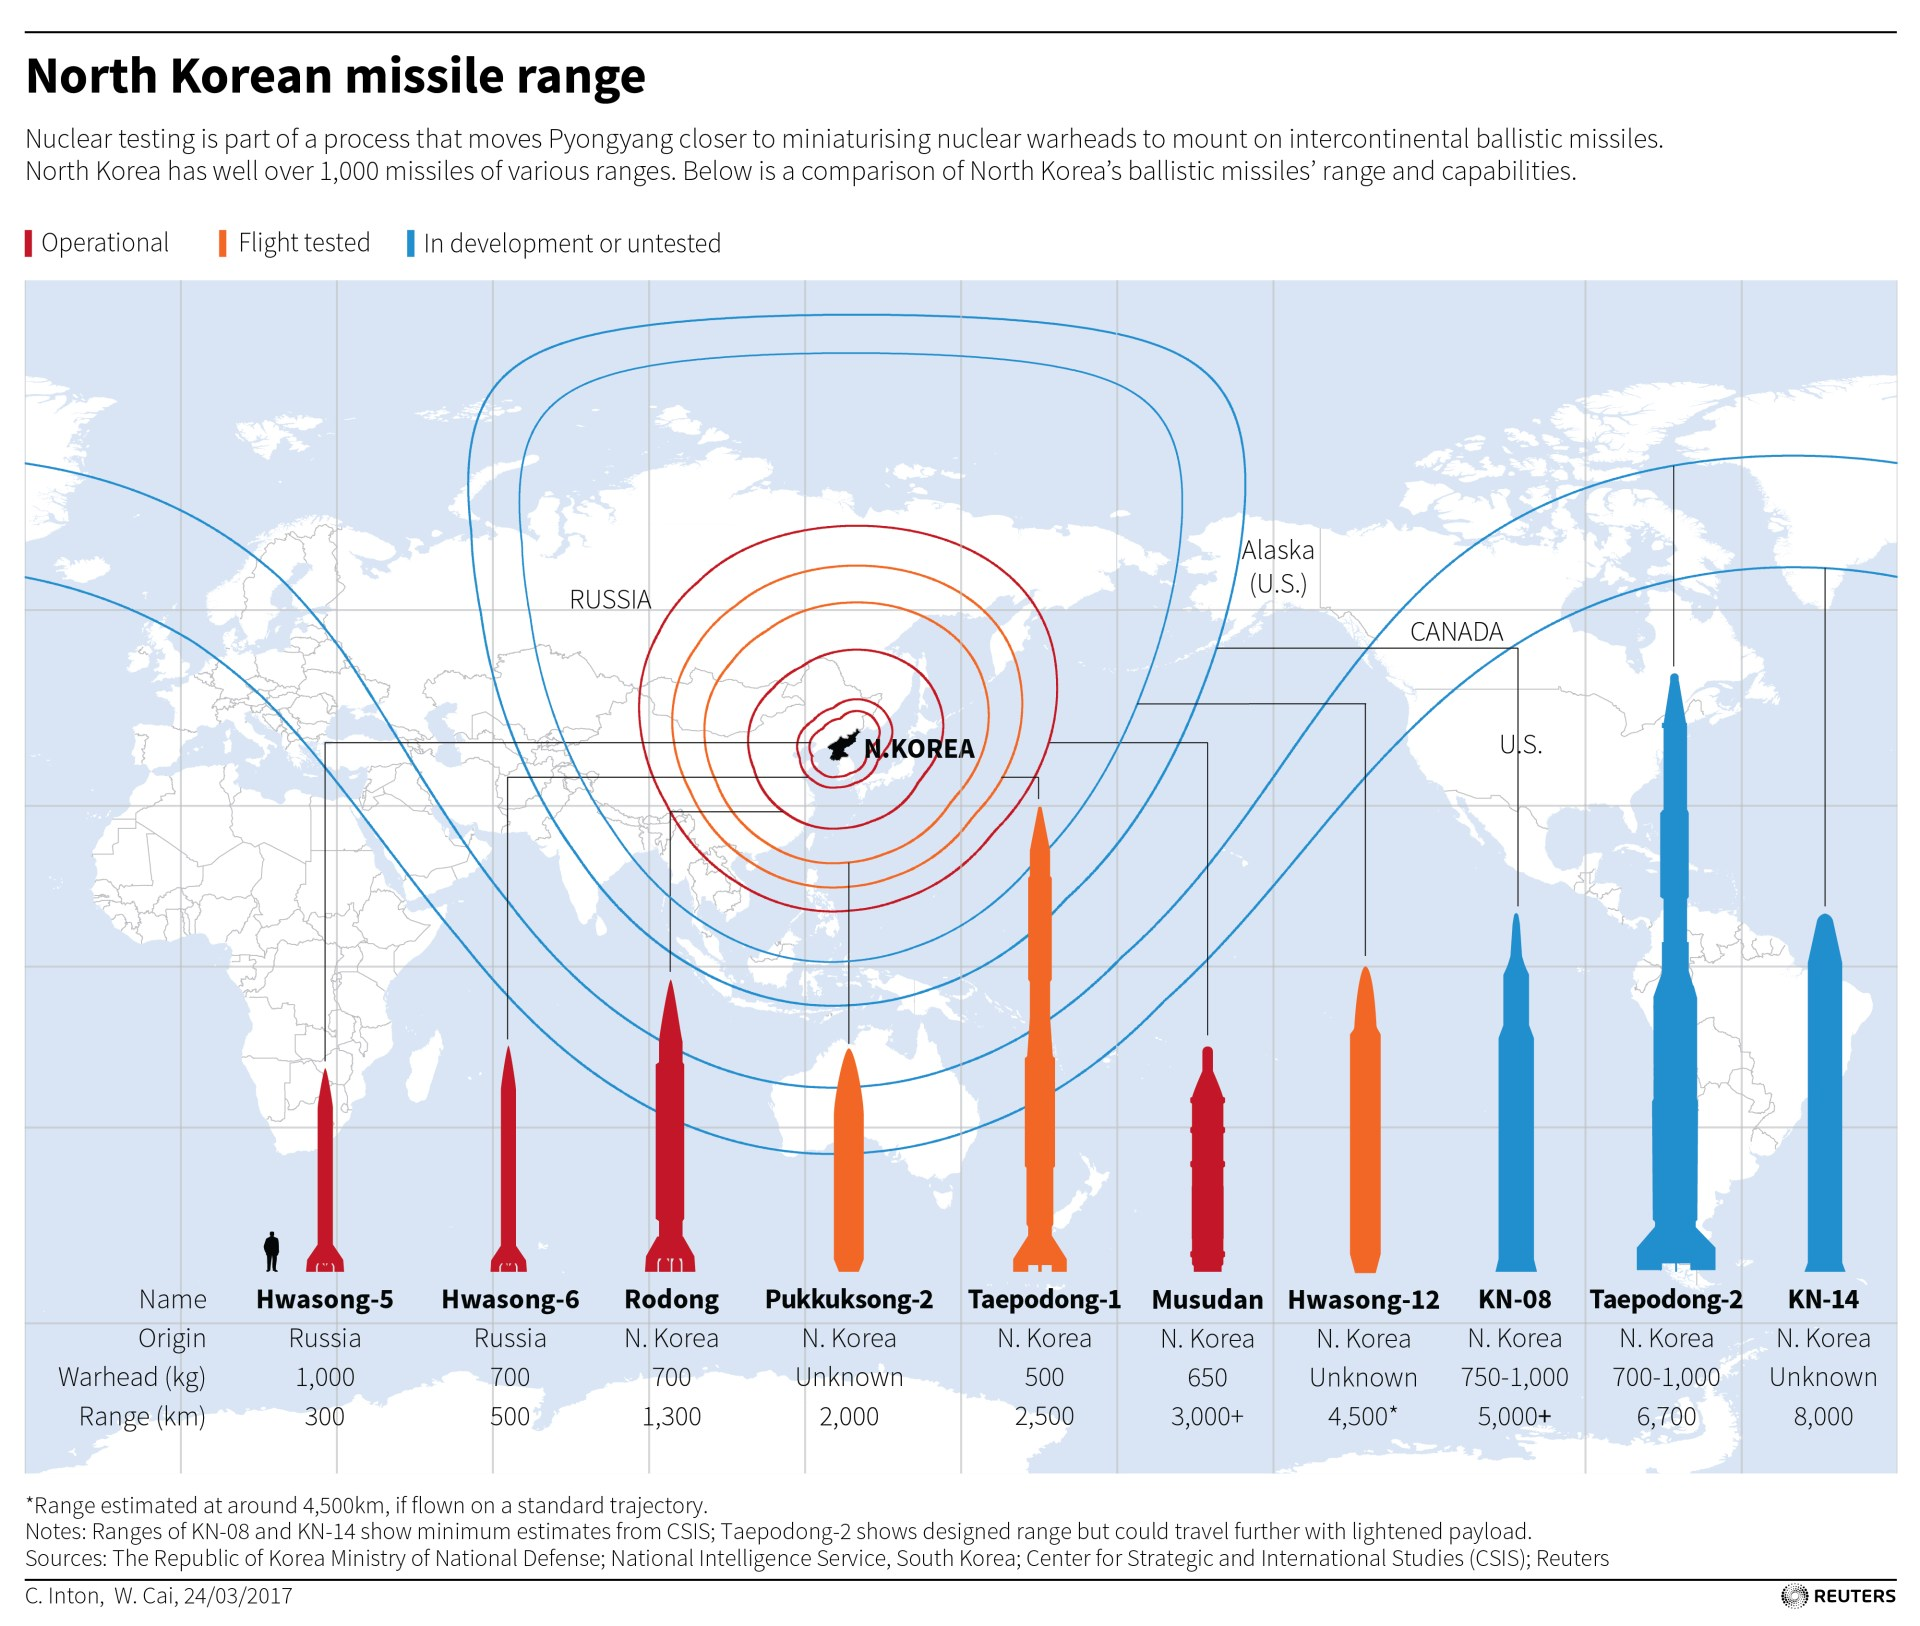 Map showing North Korean missiles and the distances they can reach.